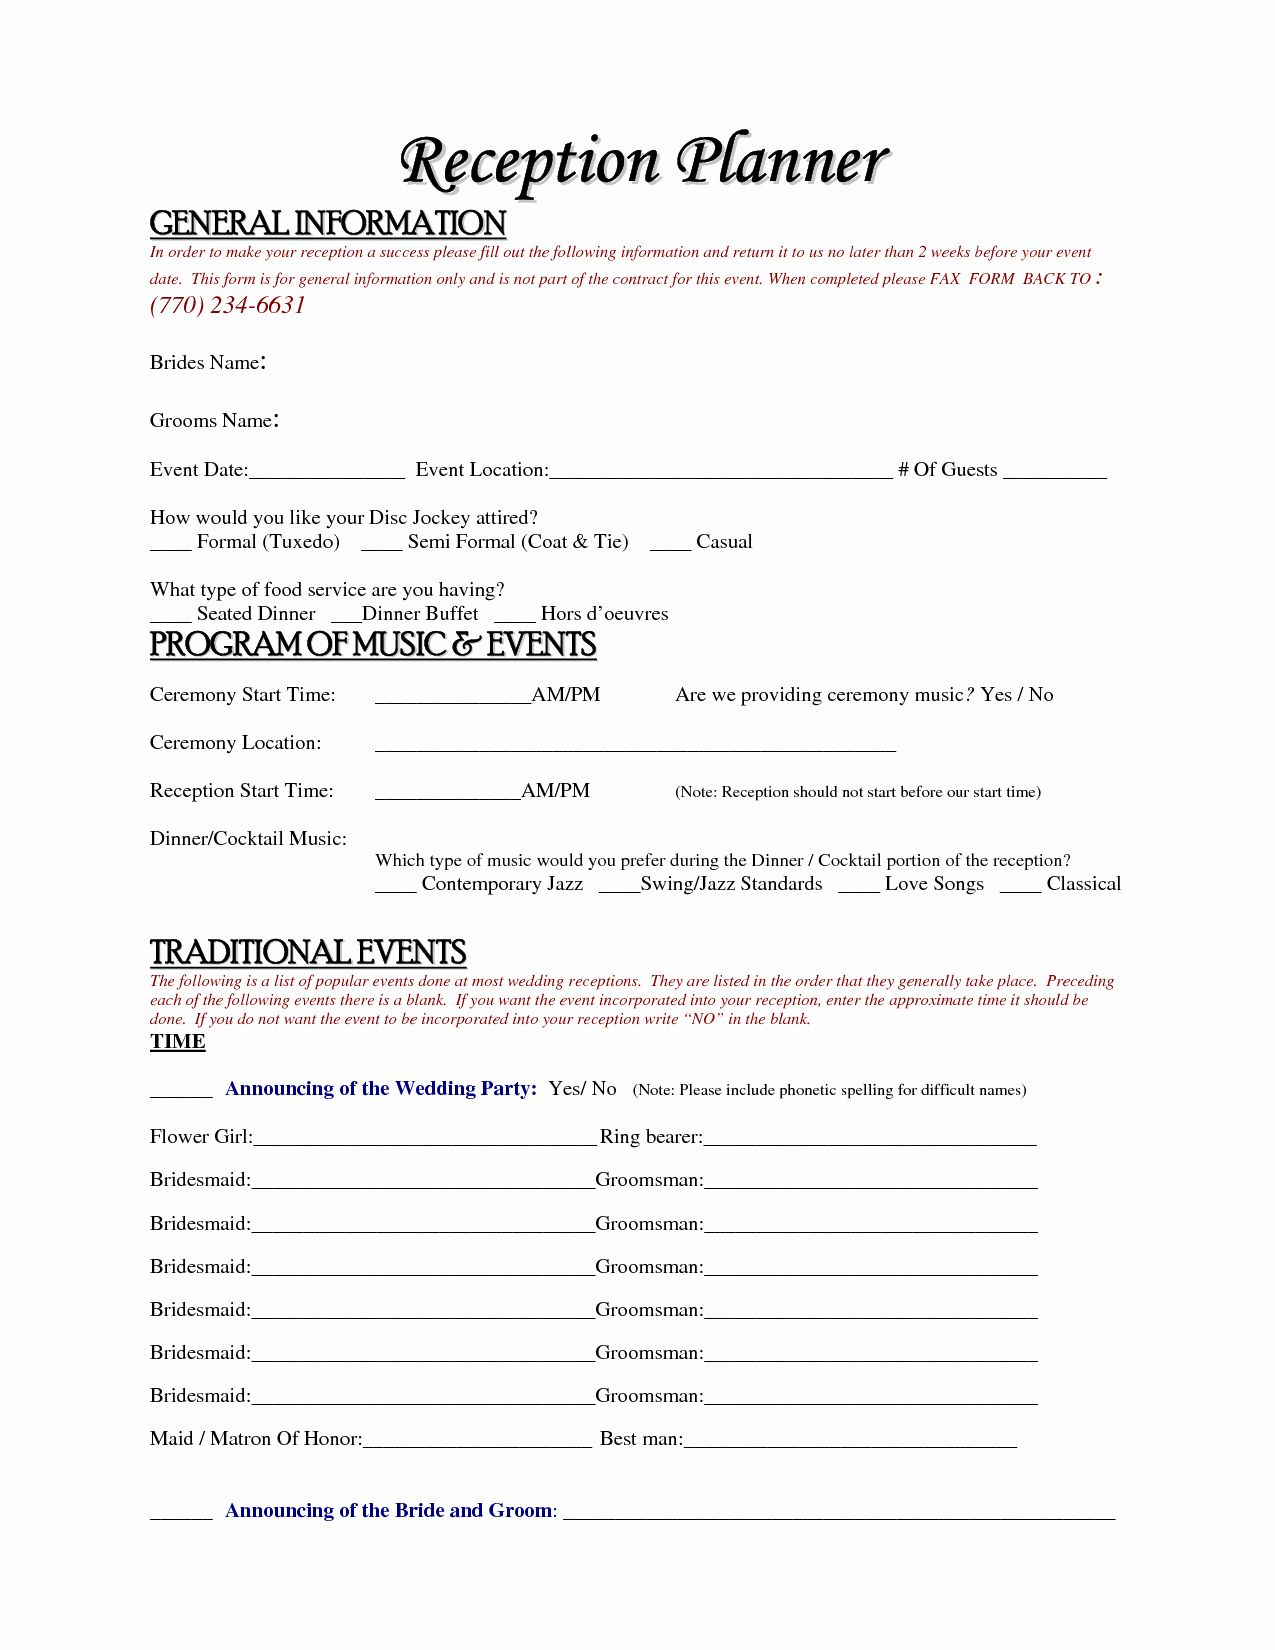 Wedding Coordinator Contract Inspirational Pin By Yesidomariage On La Voitur Wedding Planner Contract Template Event Planning Template Wedding Planner Contract